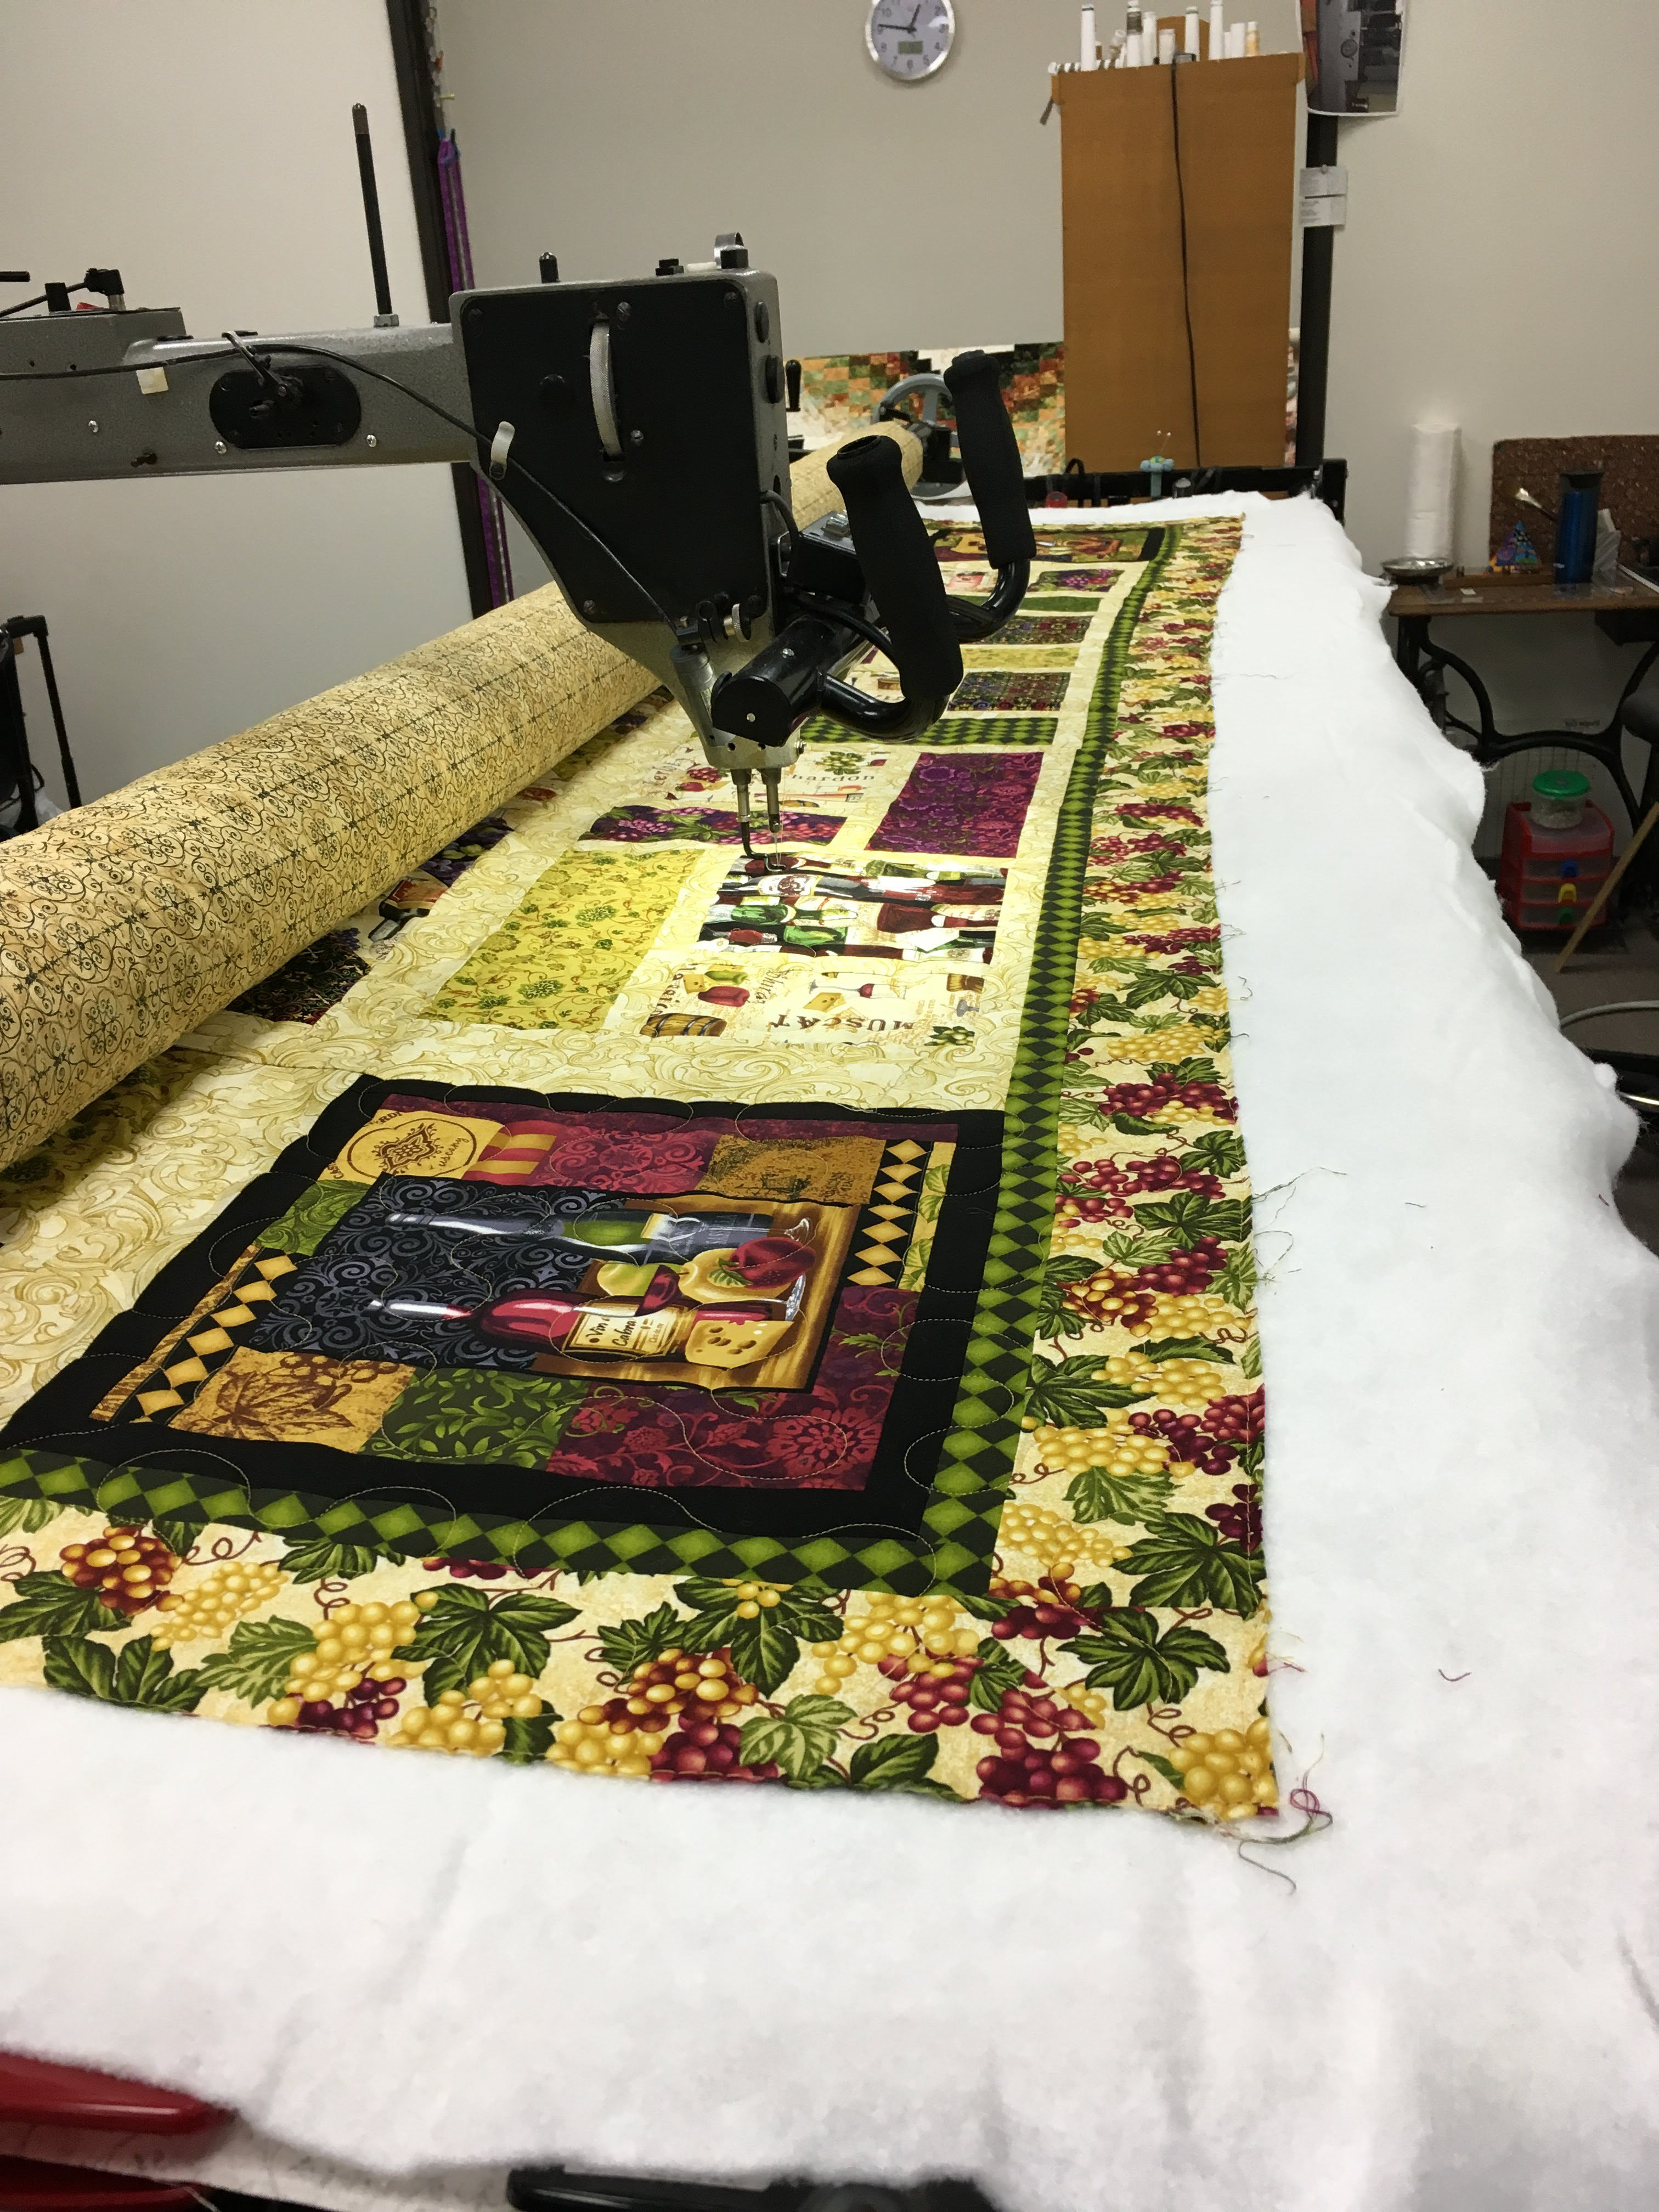 shop twin quilt page hutchinson r finished main home quilting lap image haven minnesota celebrate on